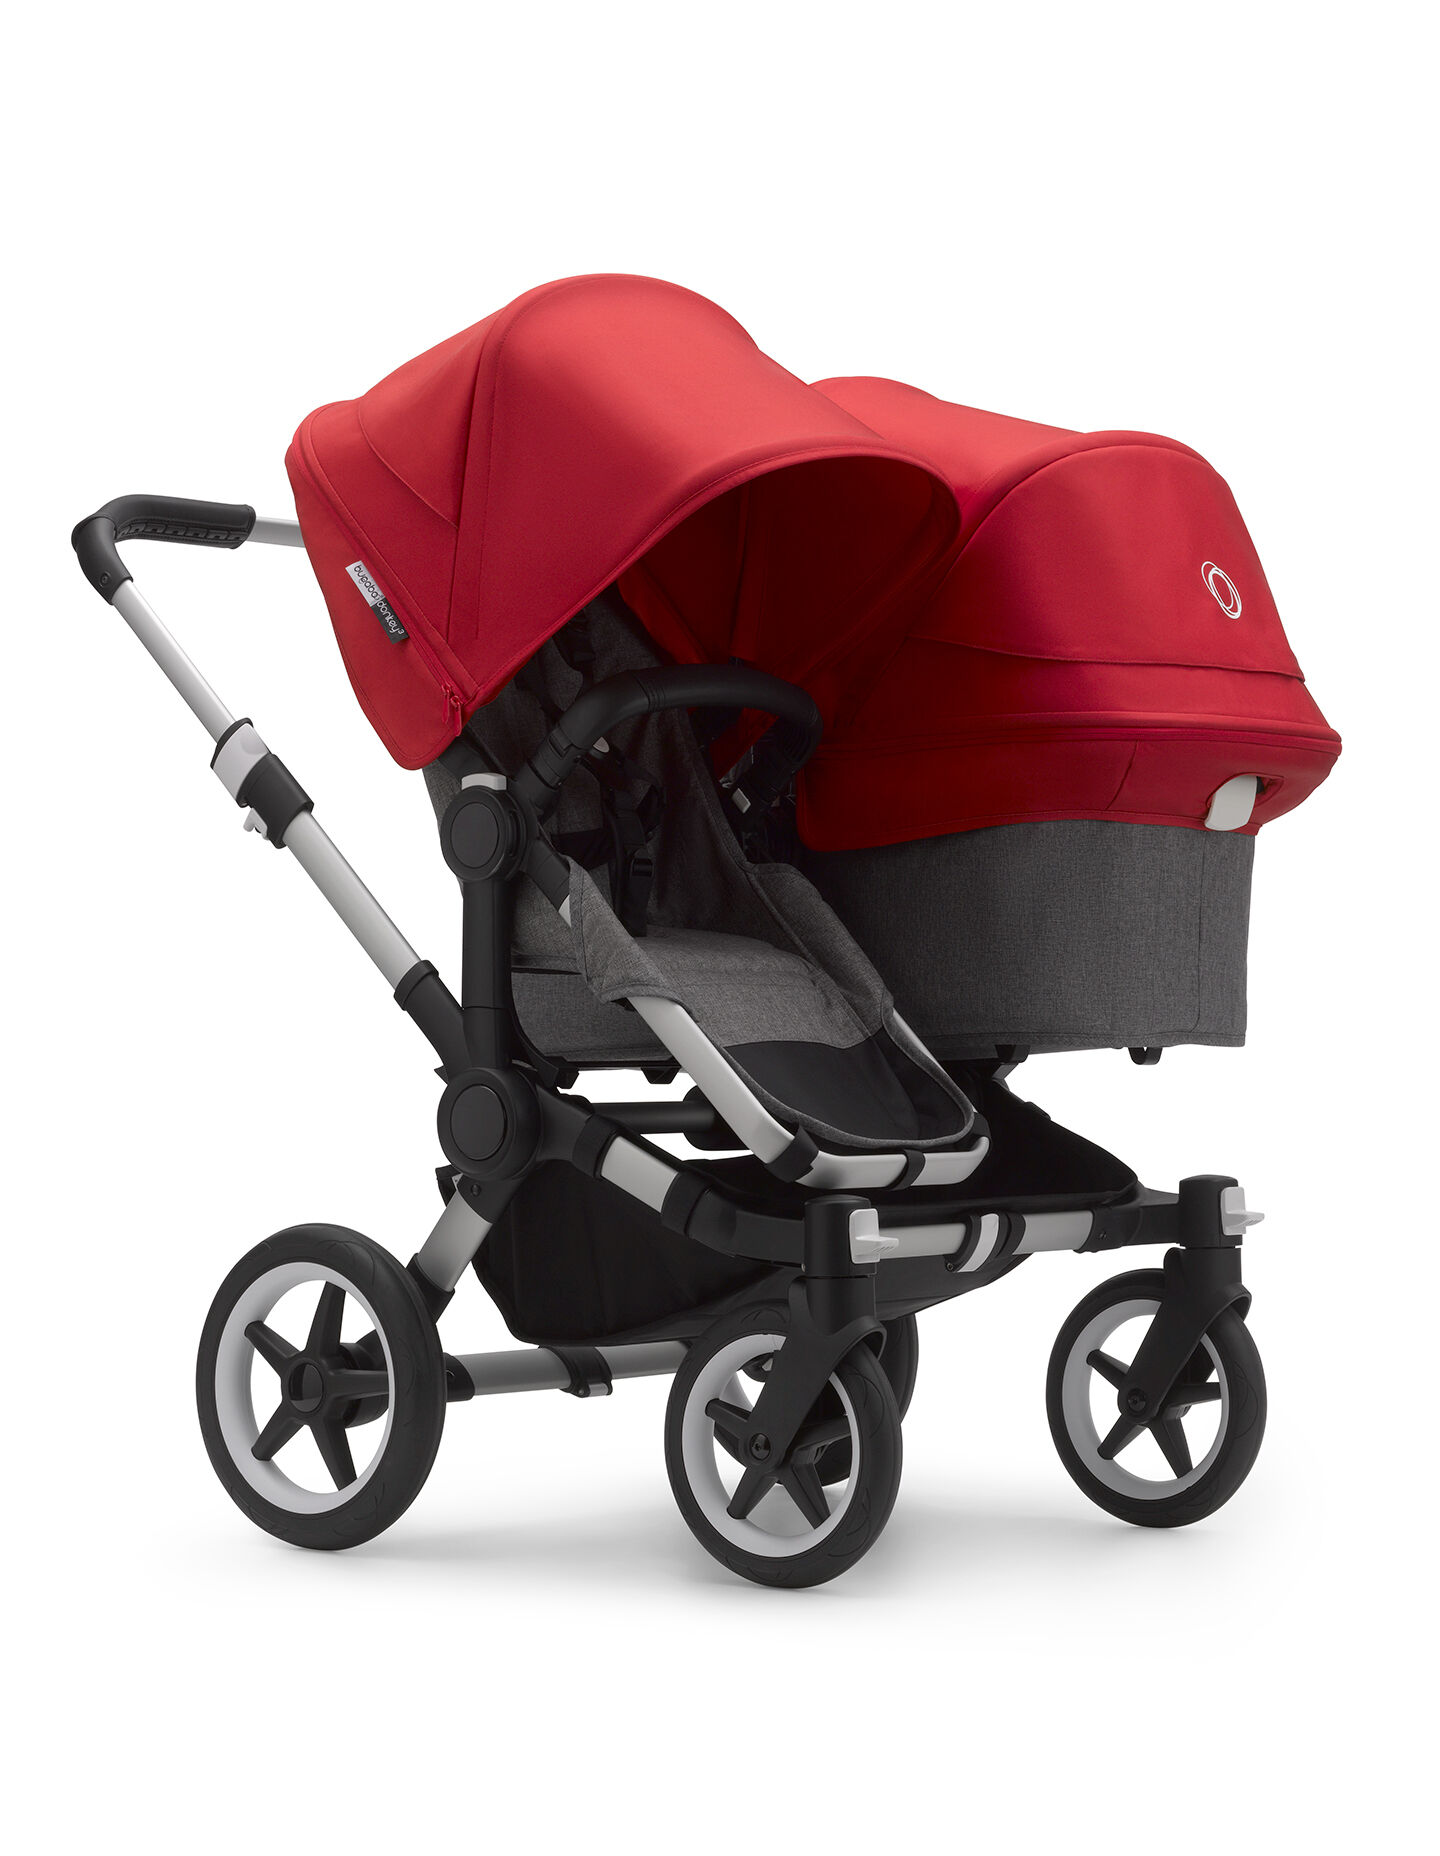 Bugaboo Donkey2 Complete Mono Stroller The Most Spacious Foldable Stroller with The Option to Expand to a Double Black//Black